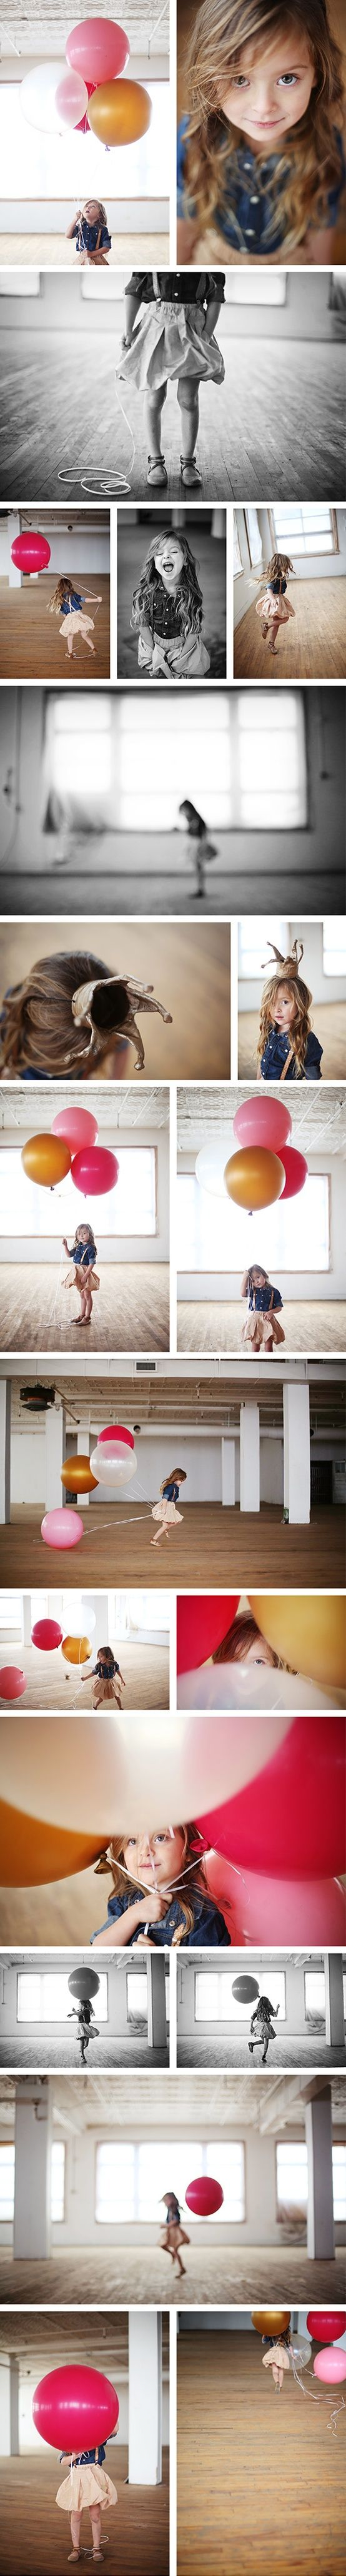 Pink Sugar Photography|Discovered « Evoking You|Inspiration for your photography